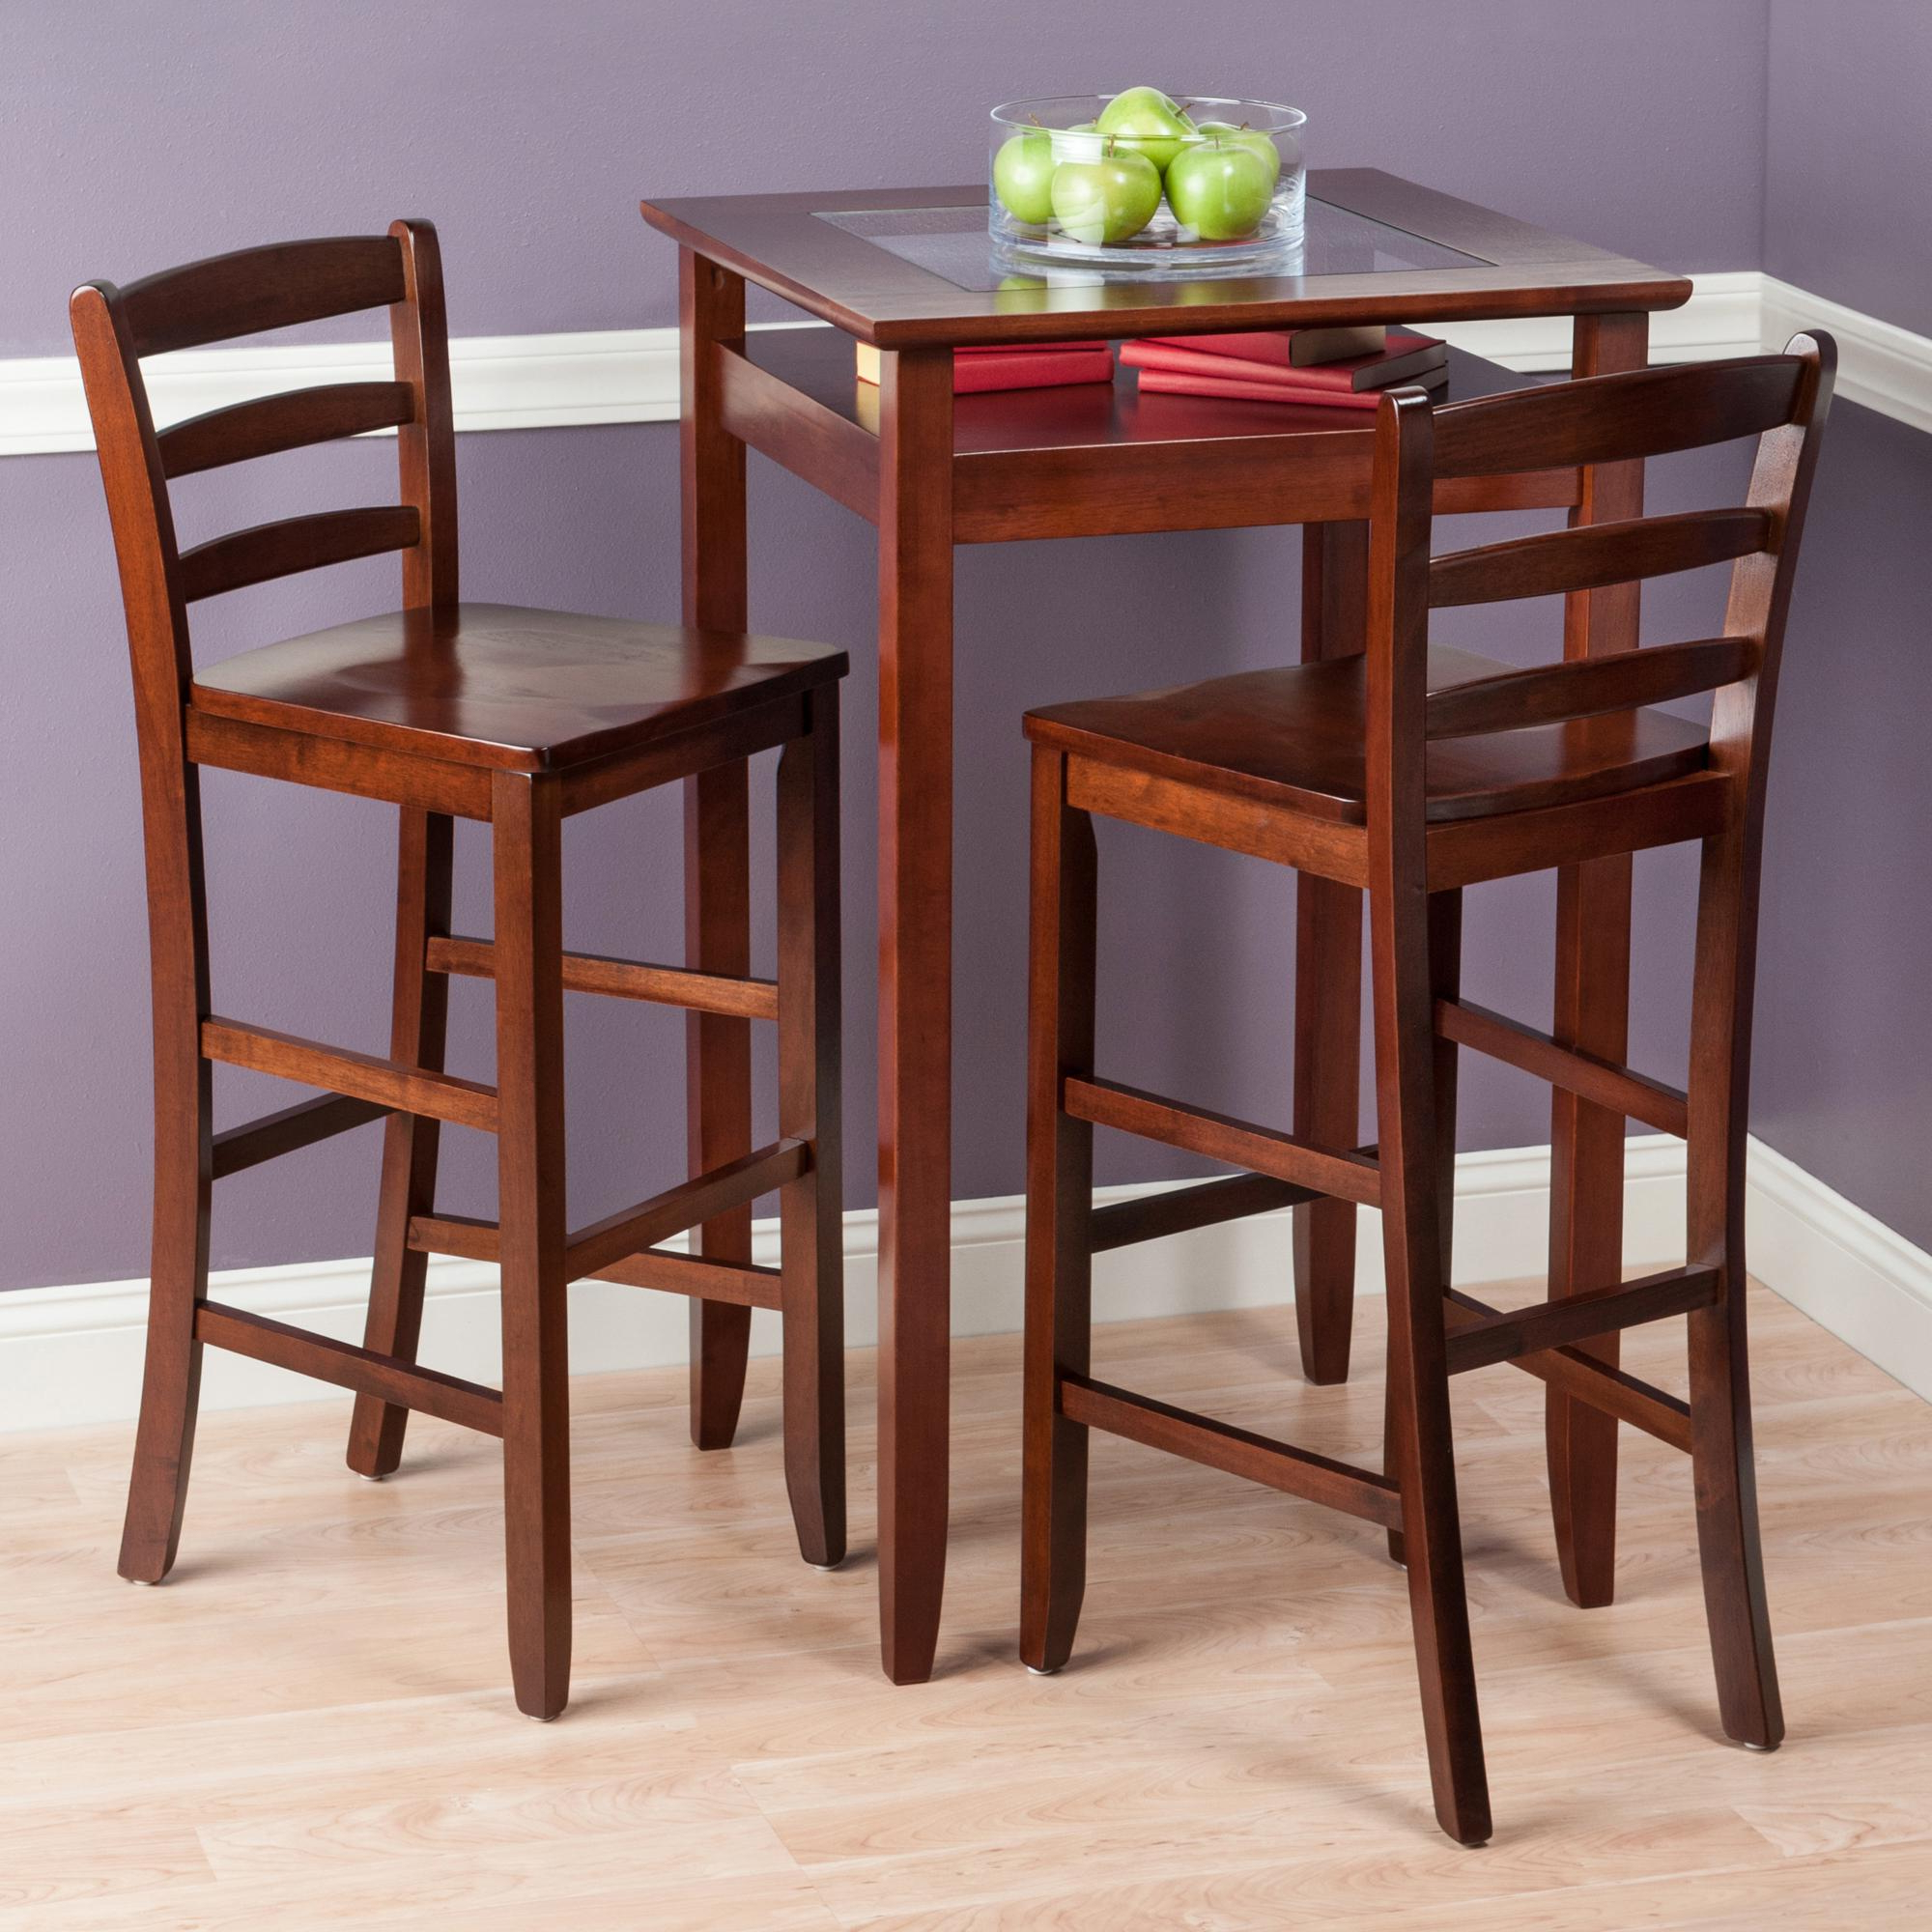 Amazon: Winsome Wood 94386 Halo Back Stool: Kitchen & Dining Regarding Most Recent Winsome 3 Piece Counter Height Dining Sets (View 1 of 25)